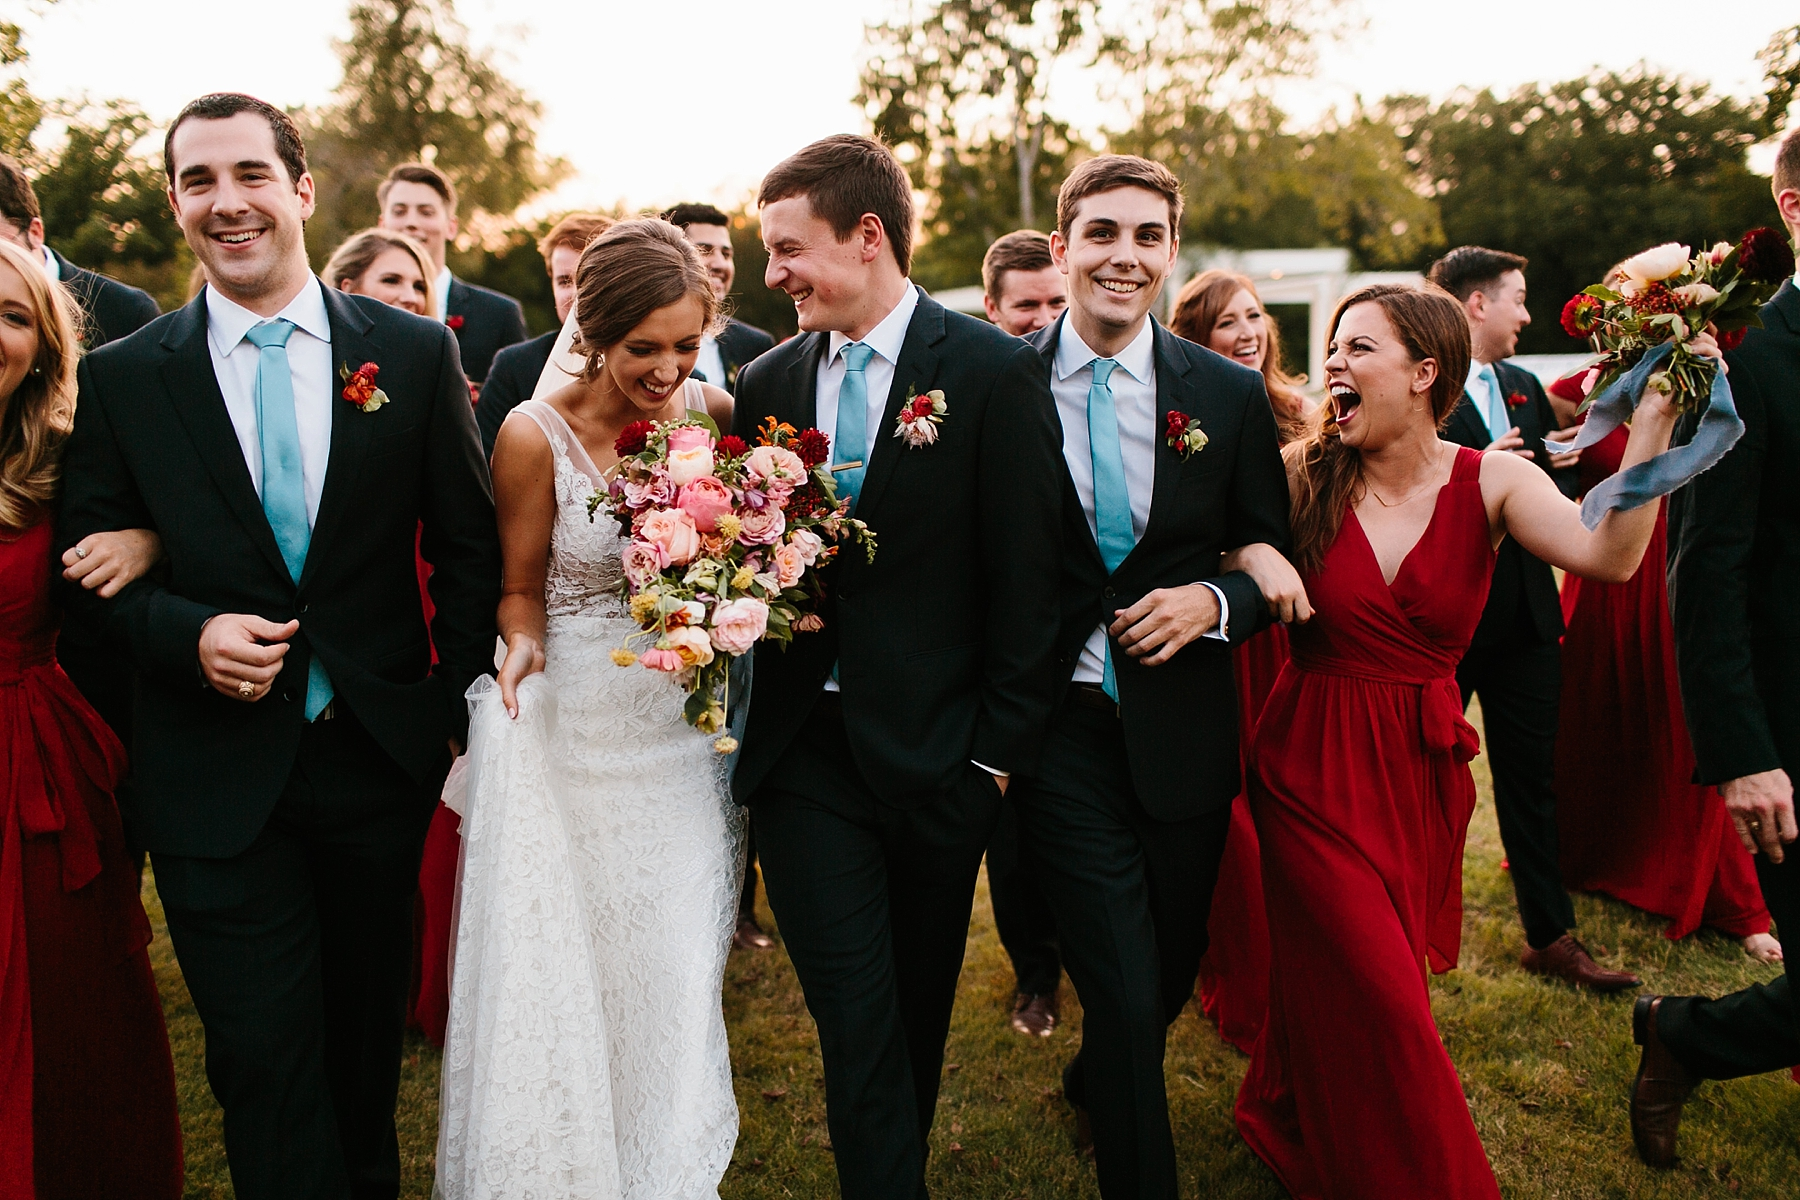 Lauren + Nathan _ a vibrant, wedding with a Navy, Red, and Duck Egg Blue Pallete at Firefly Gardens by North Texas Wedding Photographer Rachel Meagan Photography _ 125